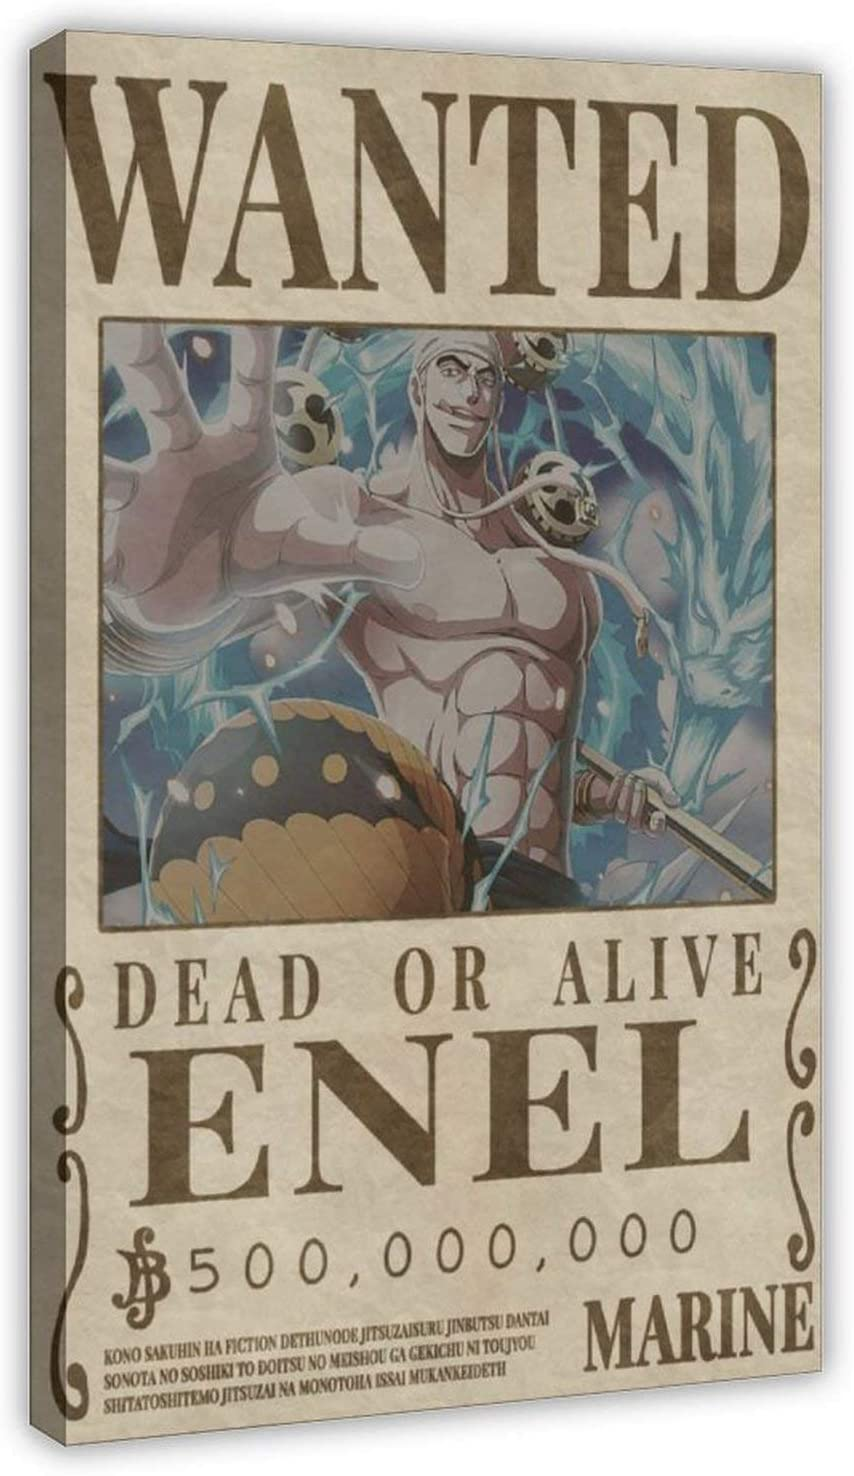 Anime One Piece ENEL Wanted Posters Miami Mall Aesthe Great interest Interior Poster